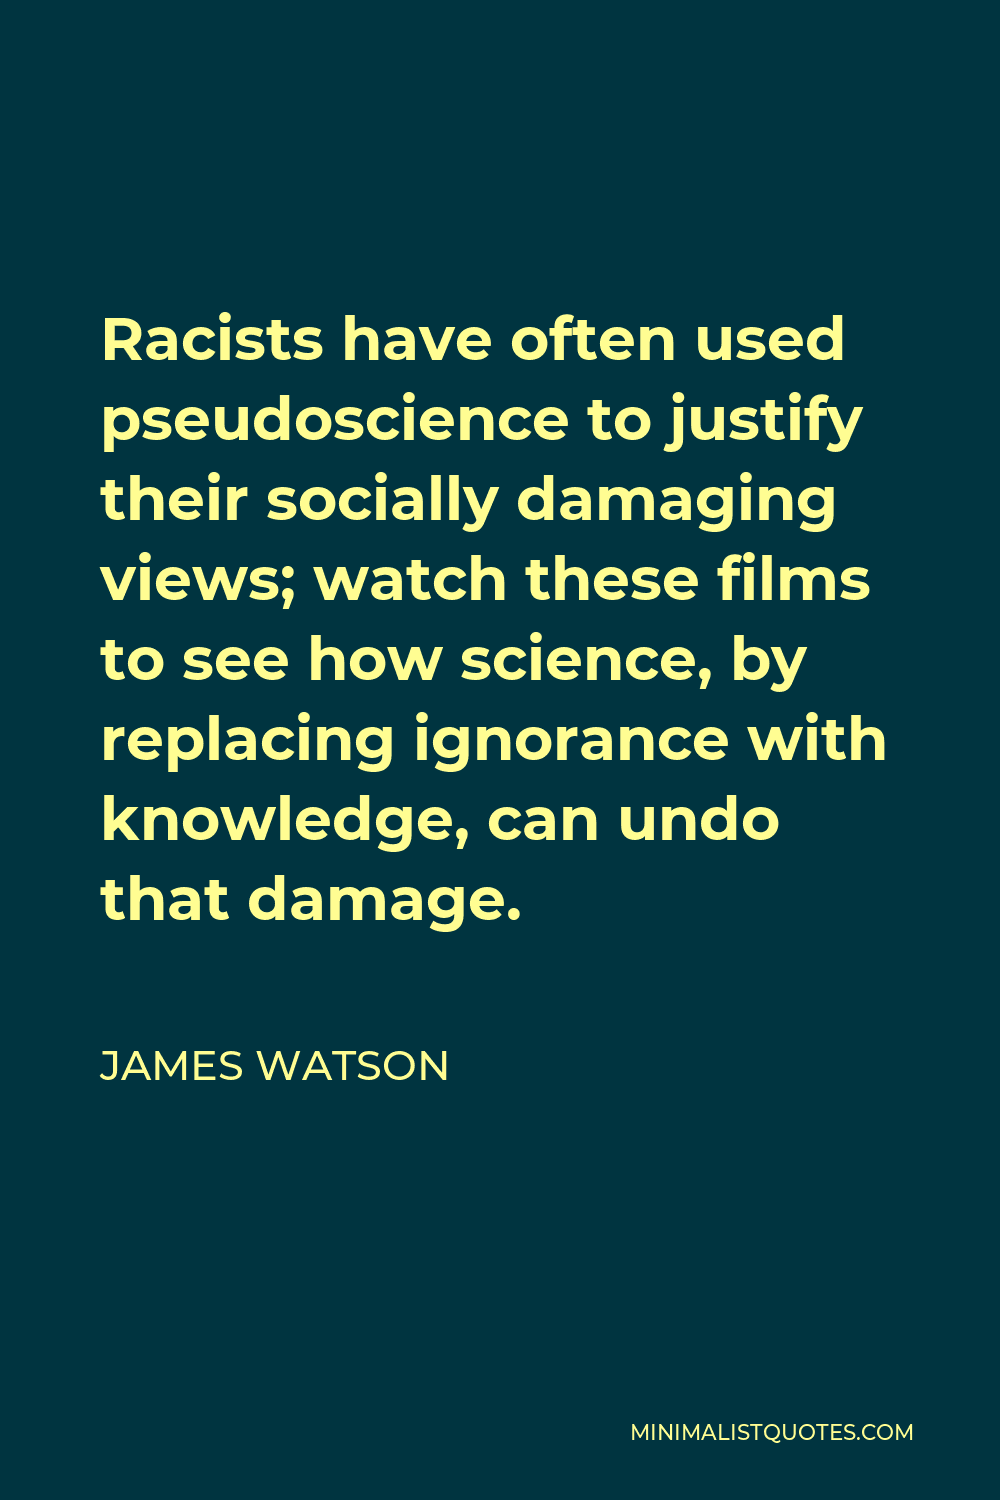 James Watson Quote - Racists have often used pseudoscience to justify their socially damaging views; watch these films to see how science, by replacing ignorance with knowledge, can undo that damage.